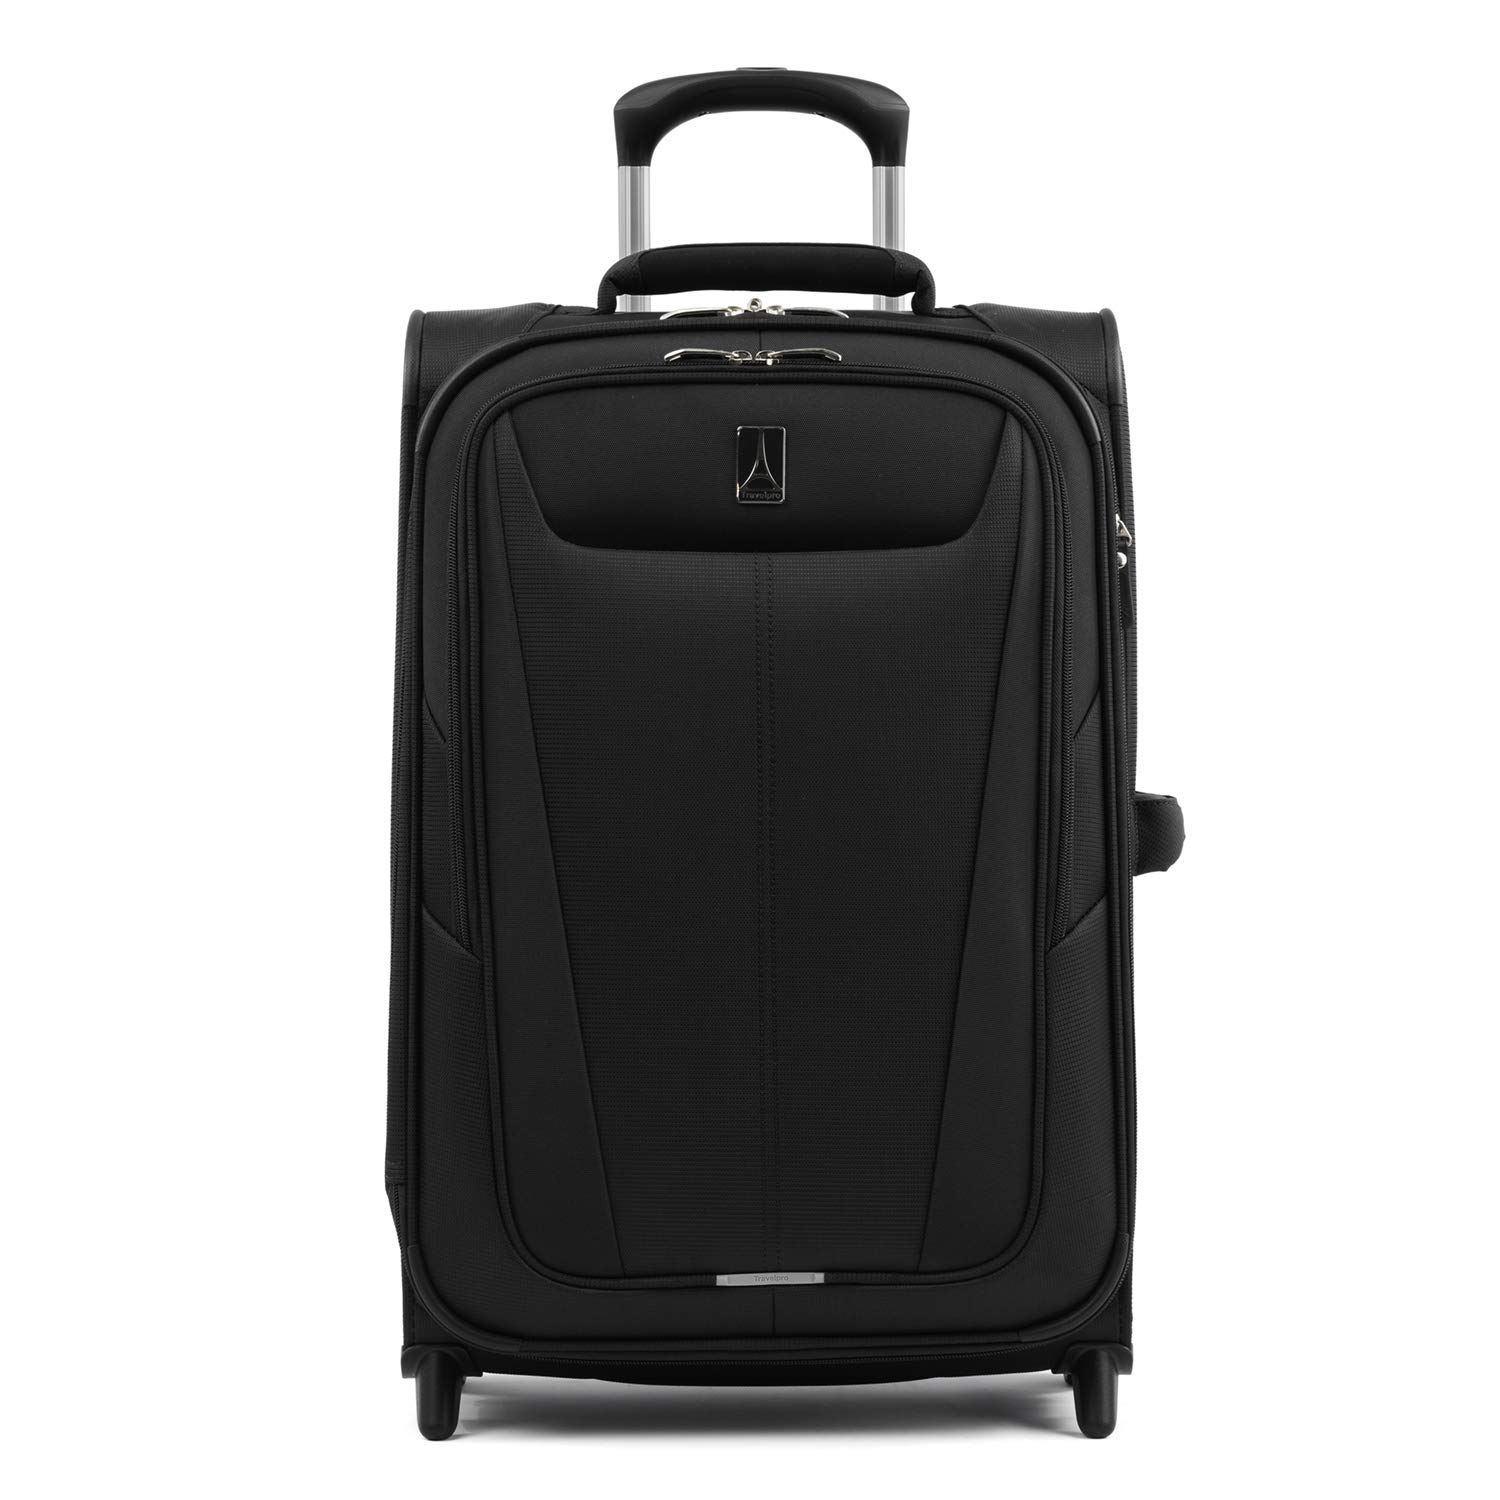 Travelpro Luggage Expandable Carry On Black